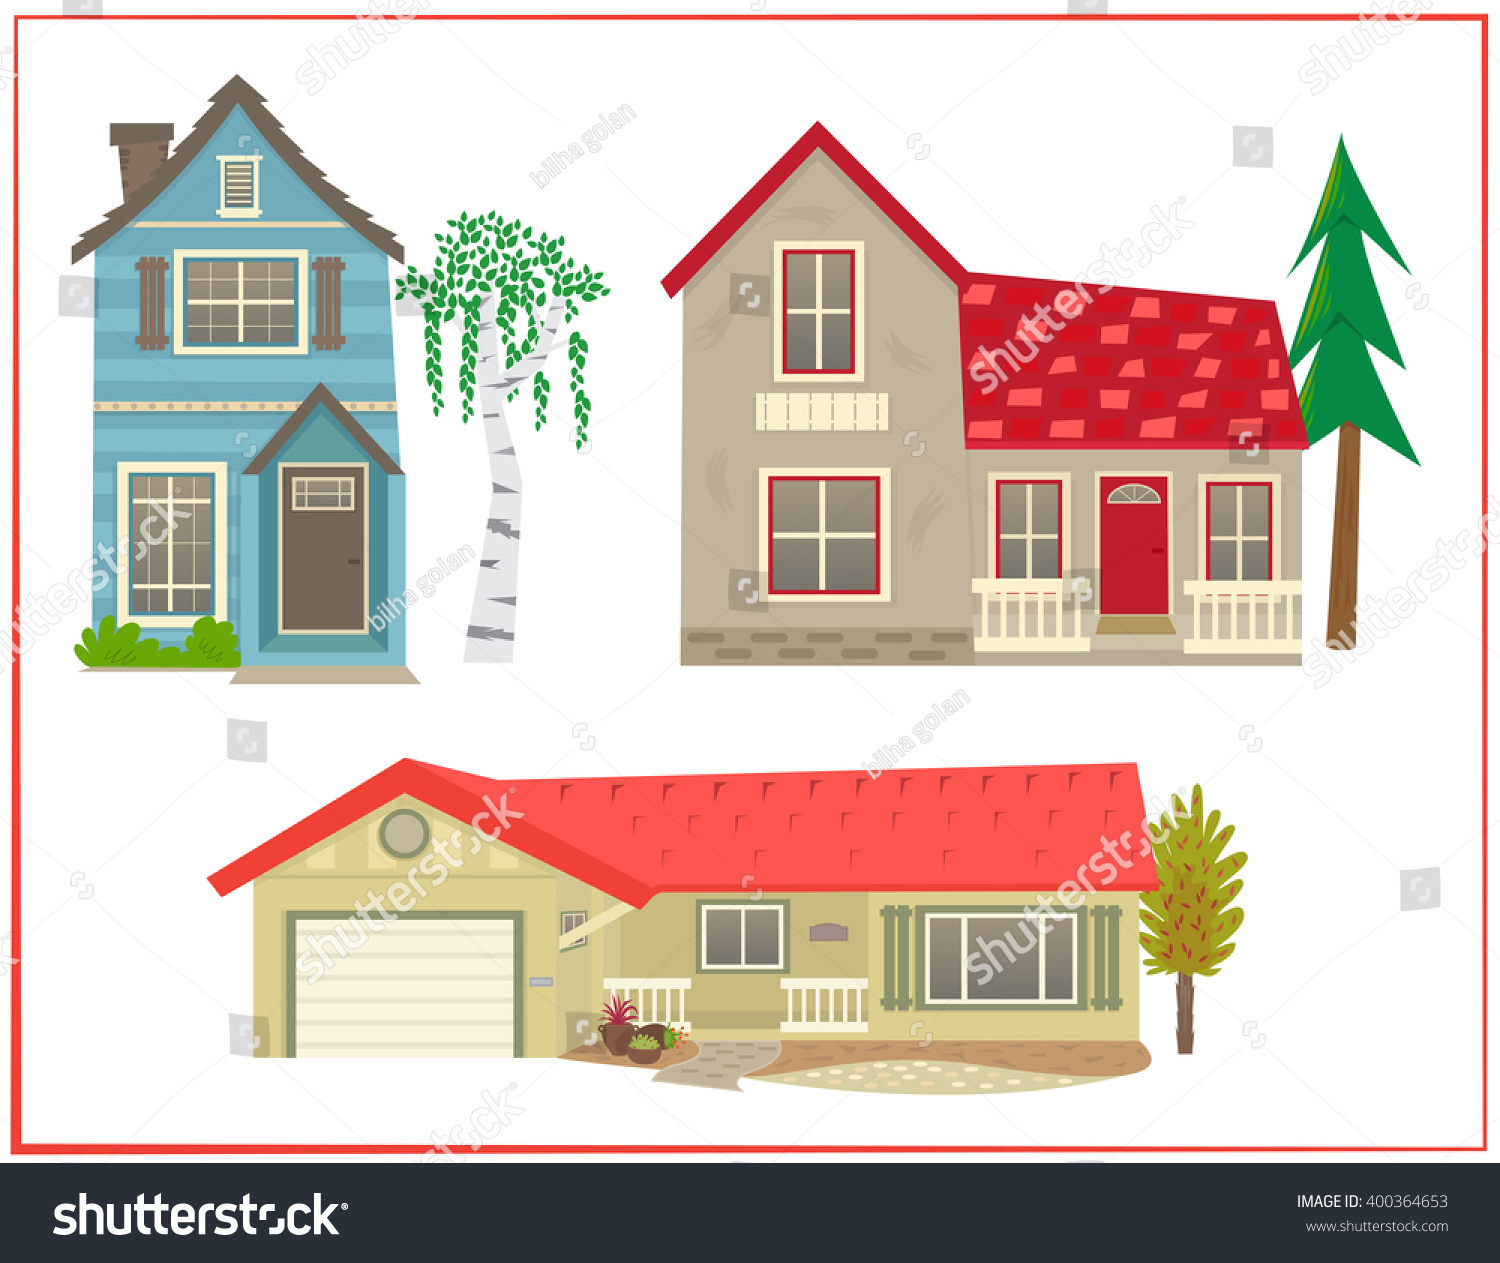 Cute houses cartoon set three different stock vector for Cute house images